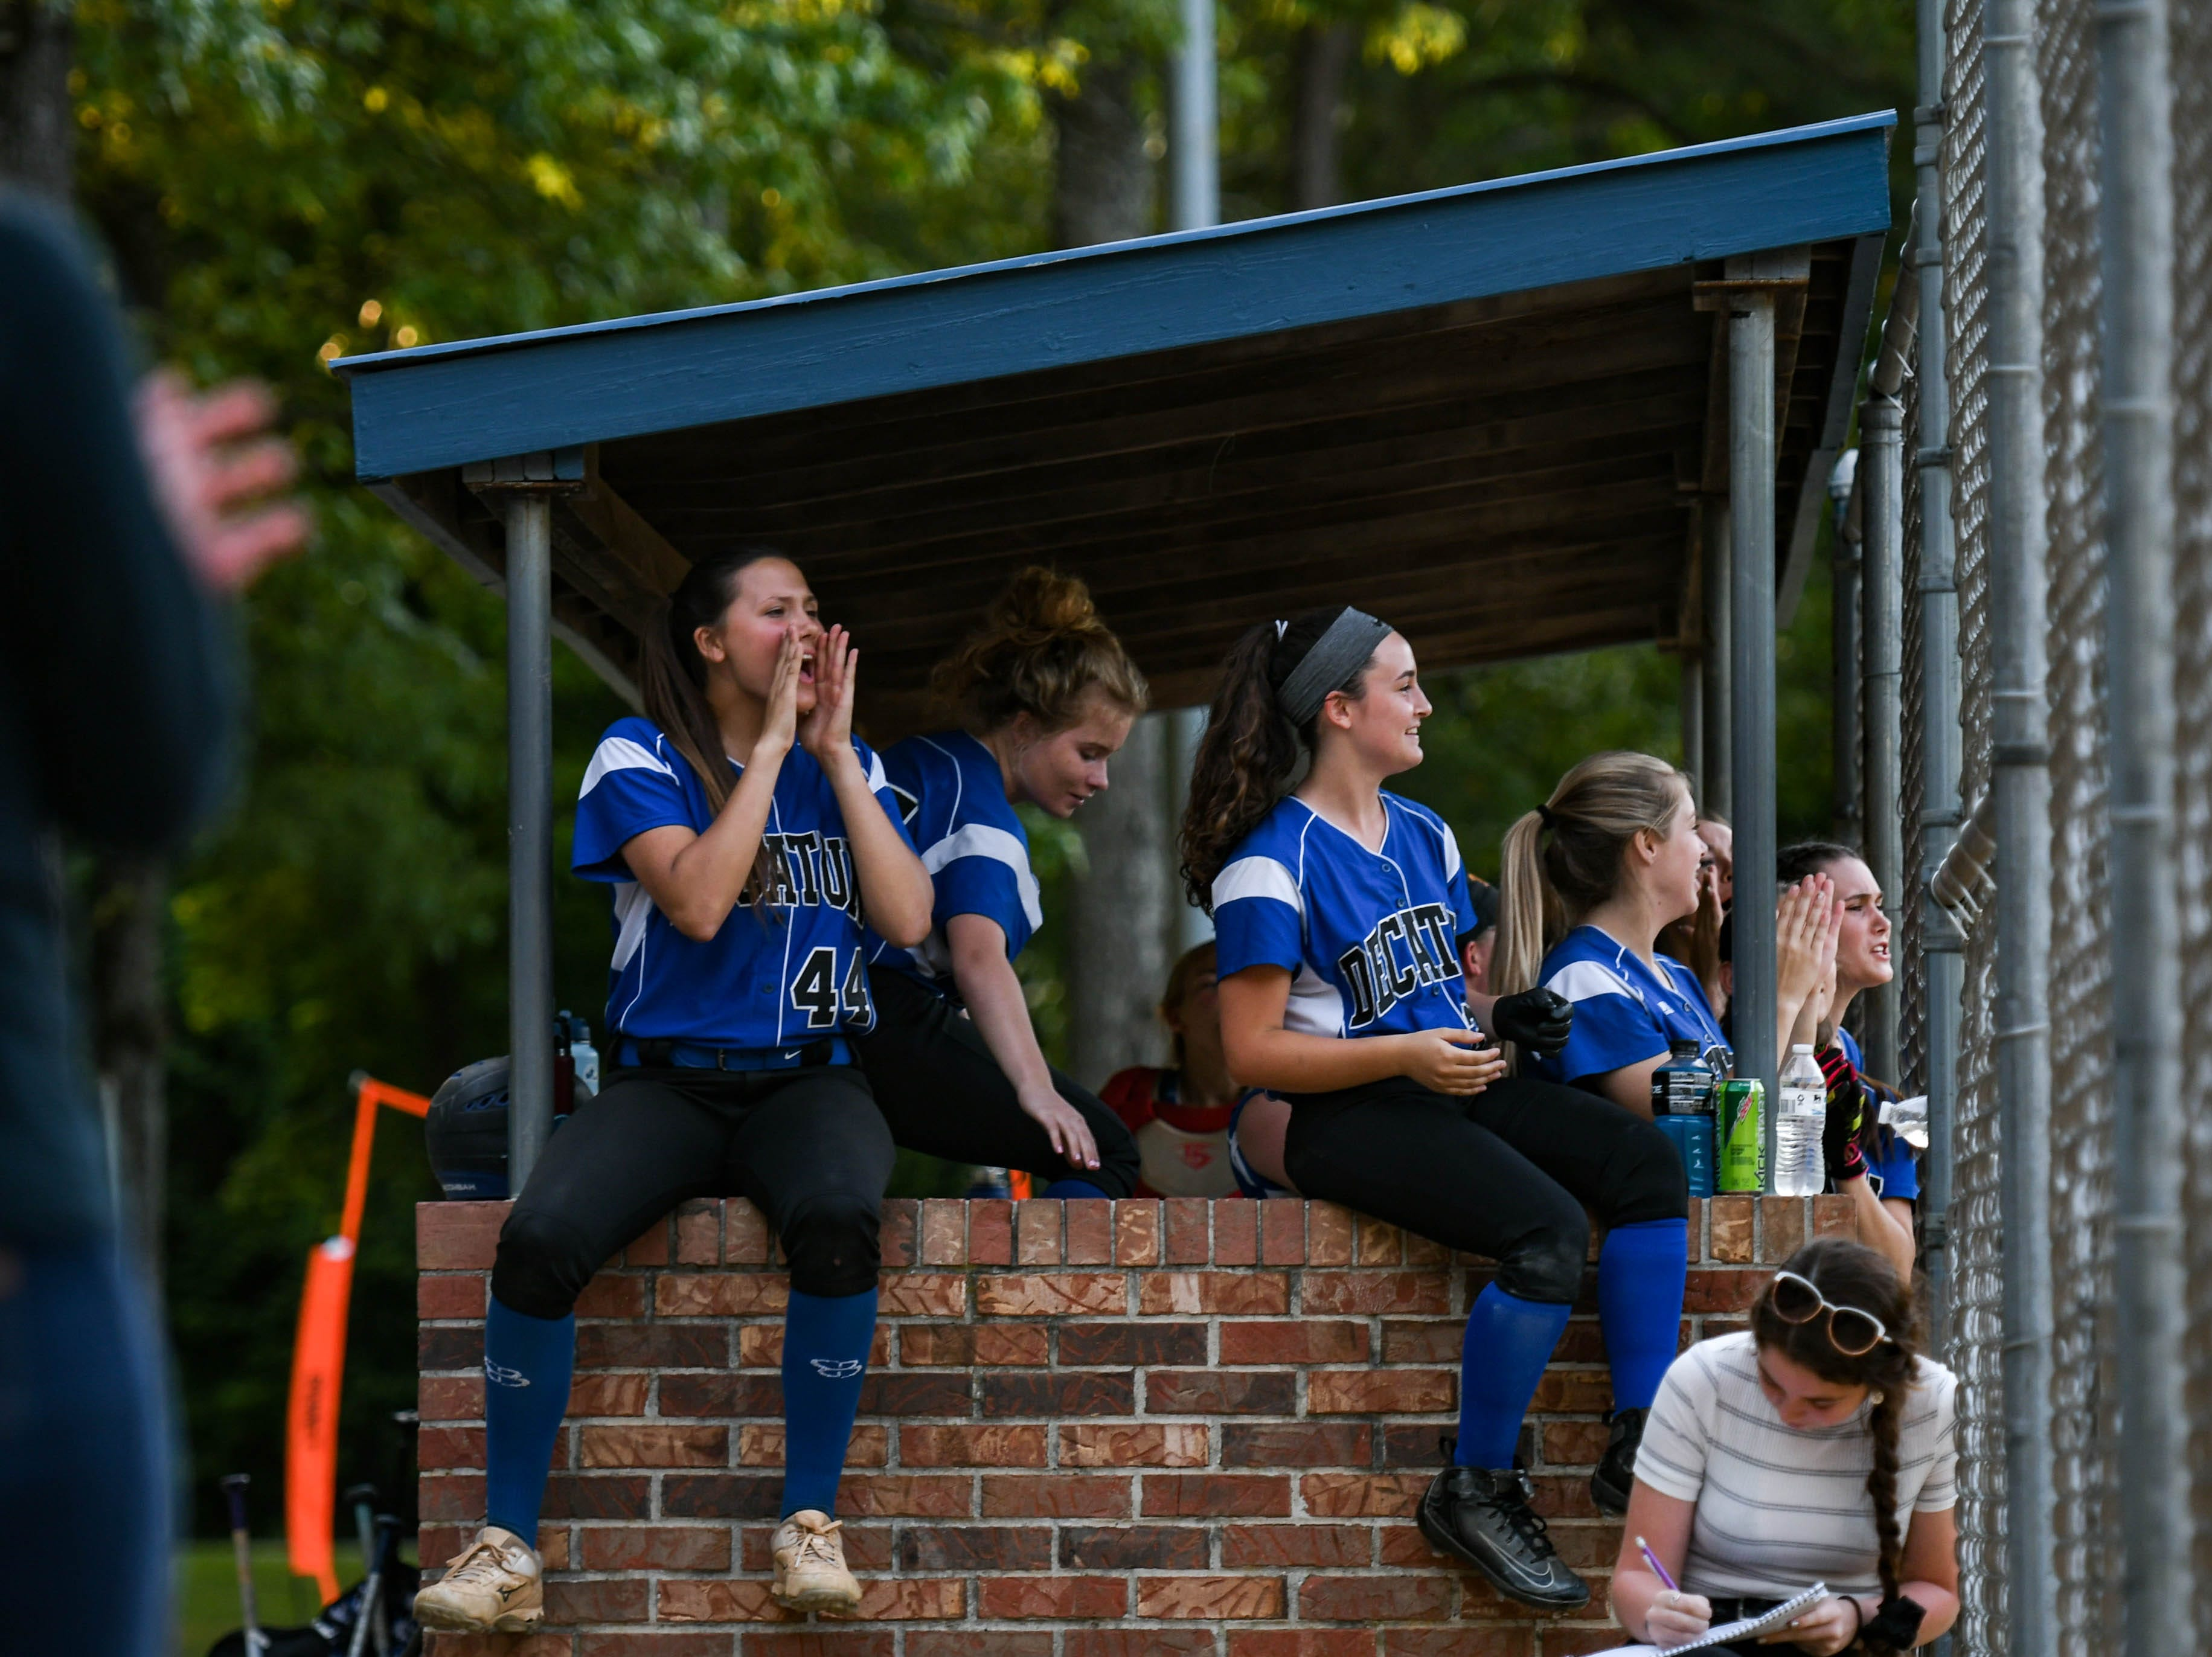 The Decatur team cheers from the dougout in the Bayside Softball Championship game against Colonel Richardson on Wednesday, May 8, 2019. Decatur prevailed with a score of 4 to 1.